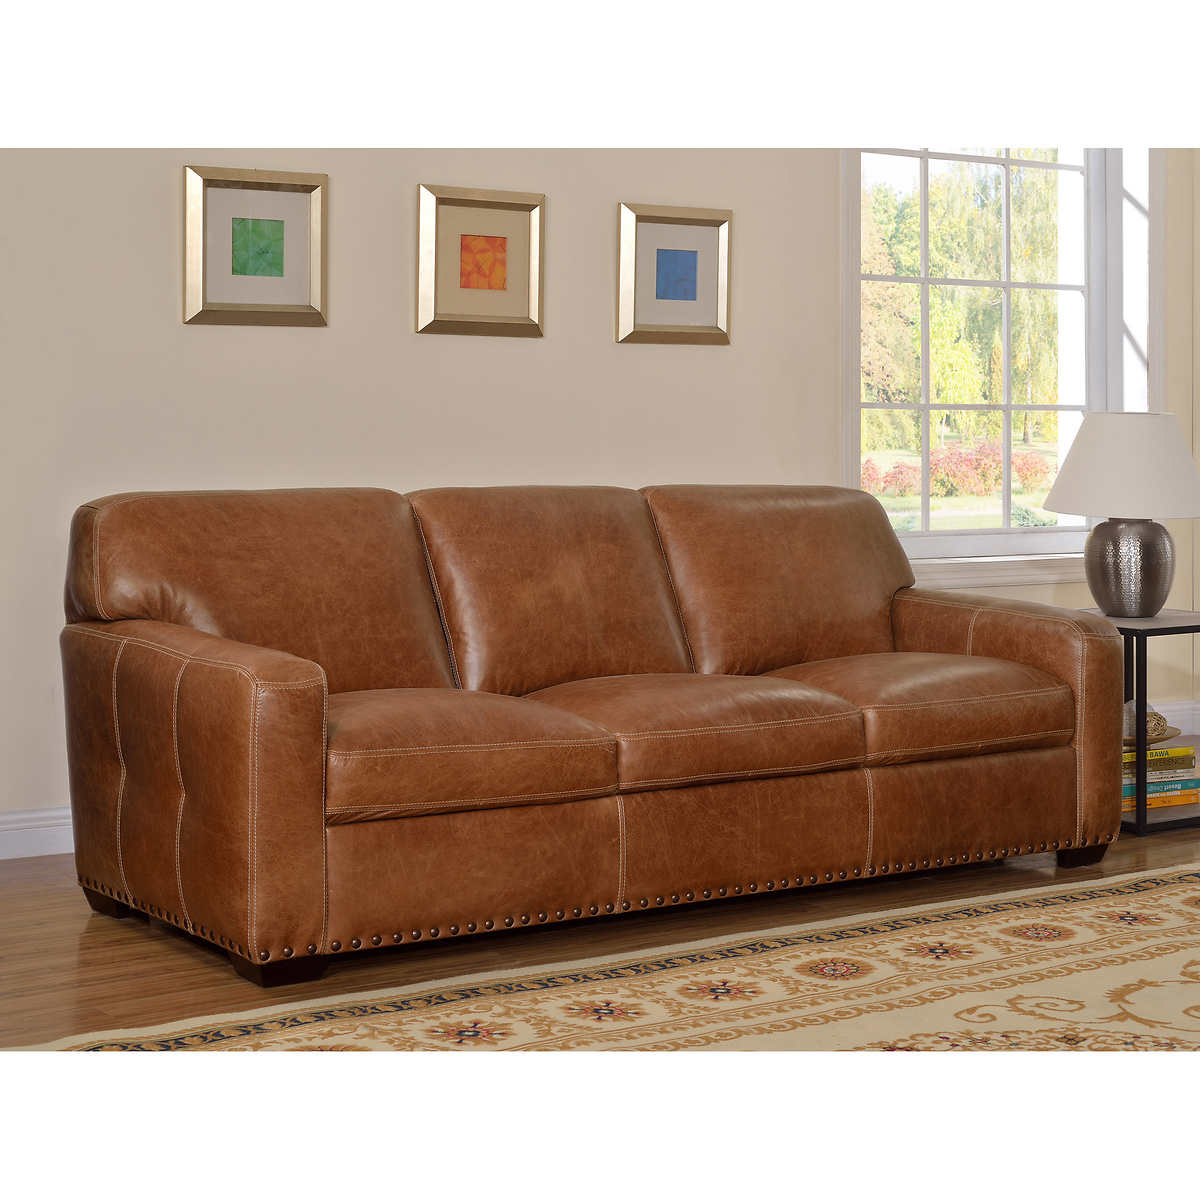 Kuka leather sofa reviews refil sofa for Kuka sectional leather sofa